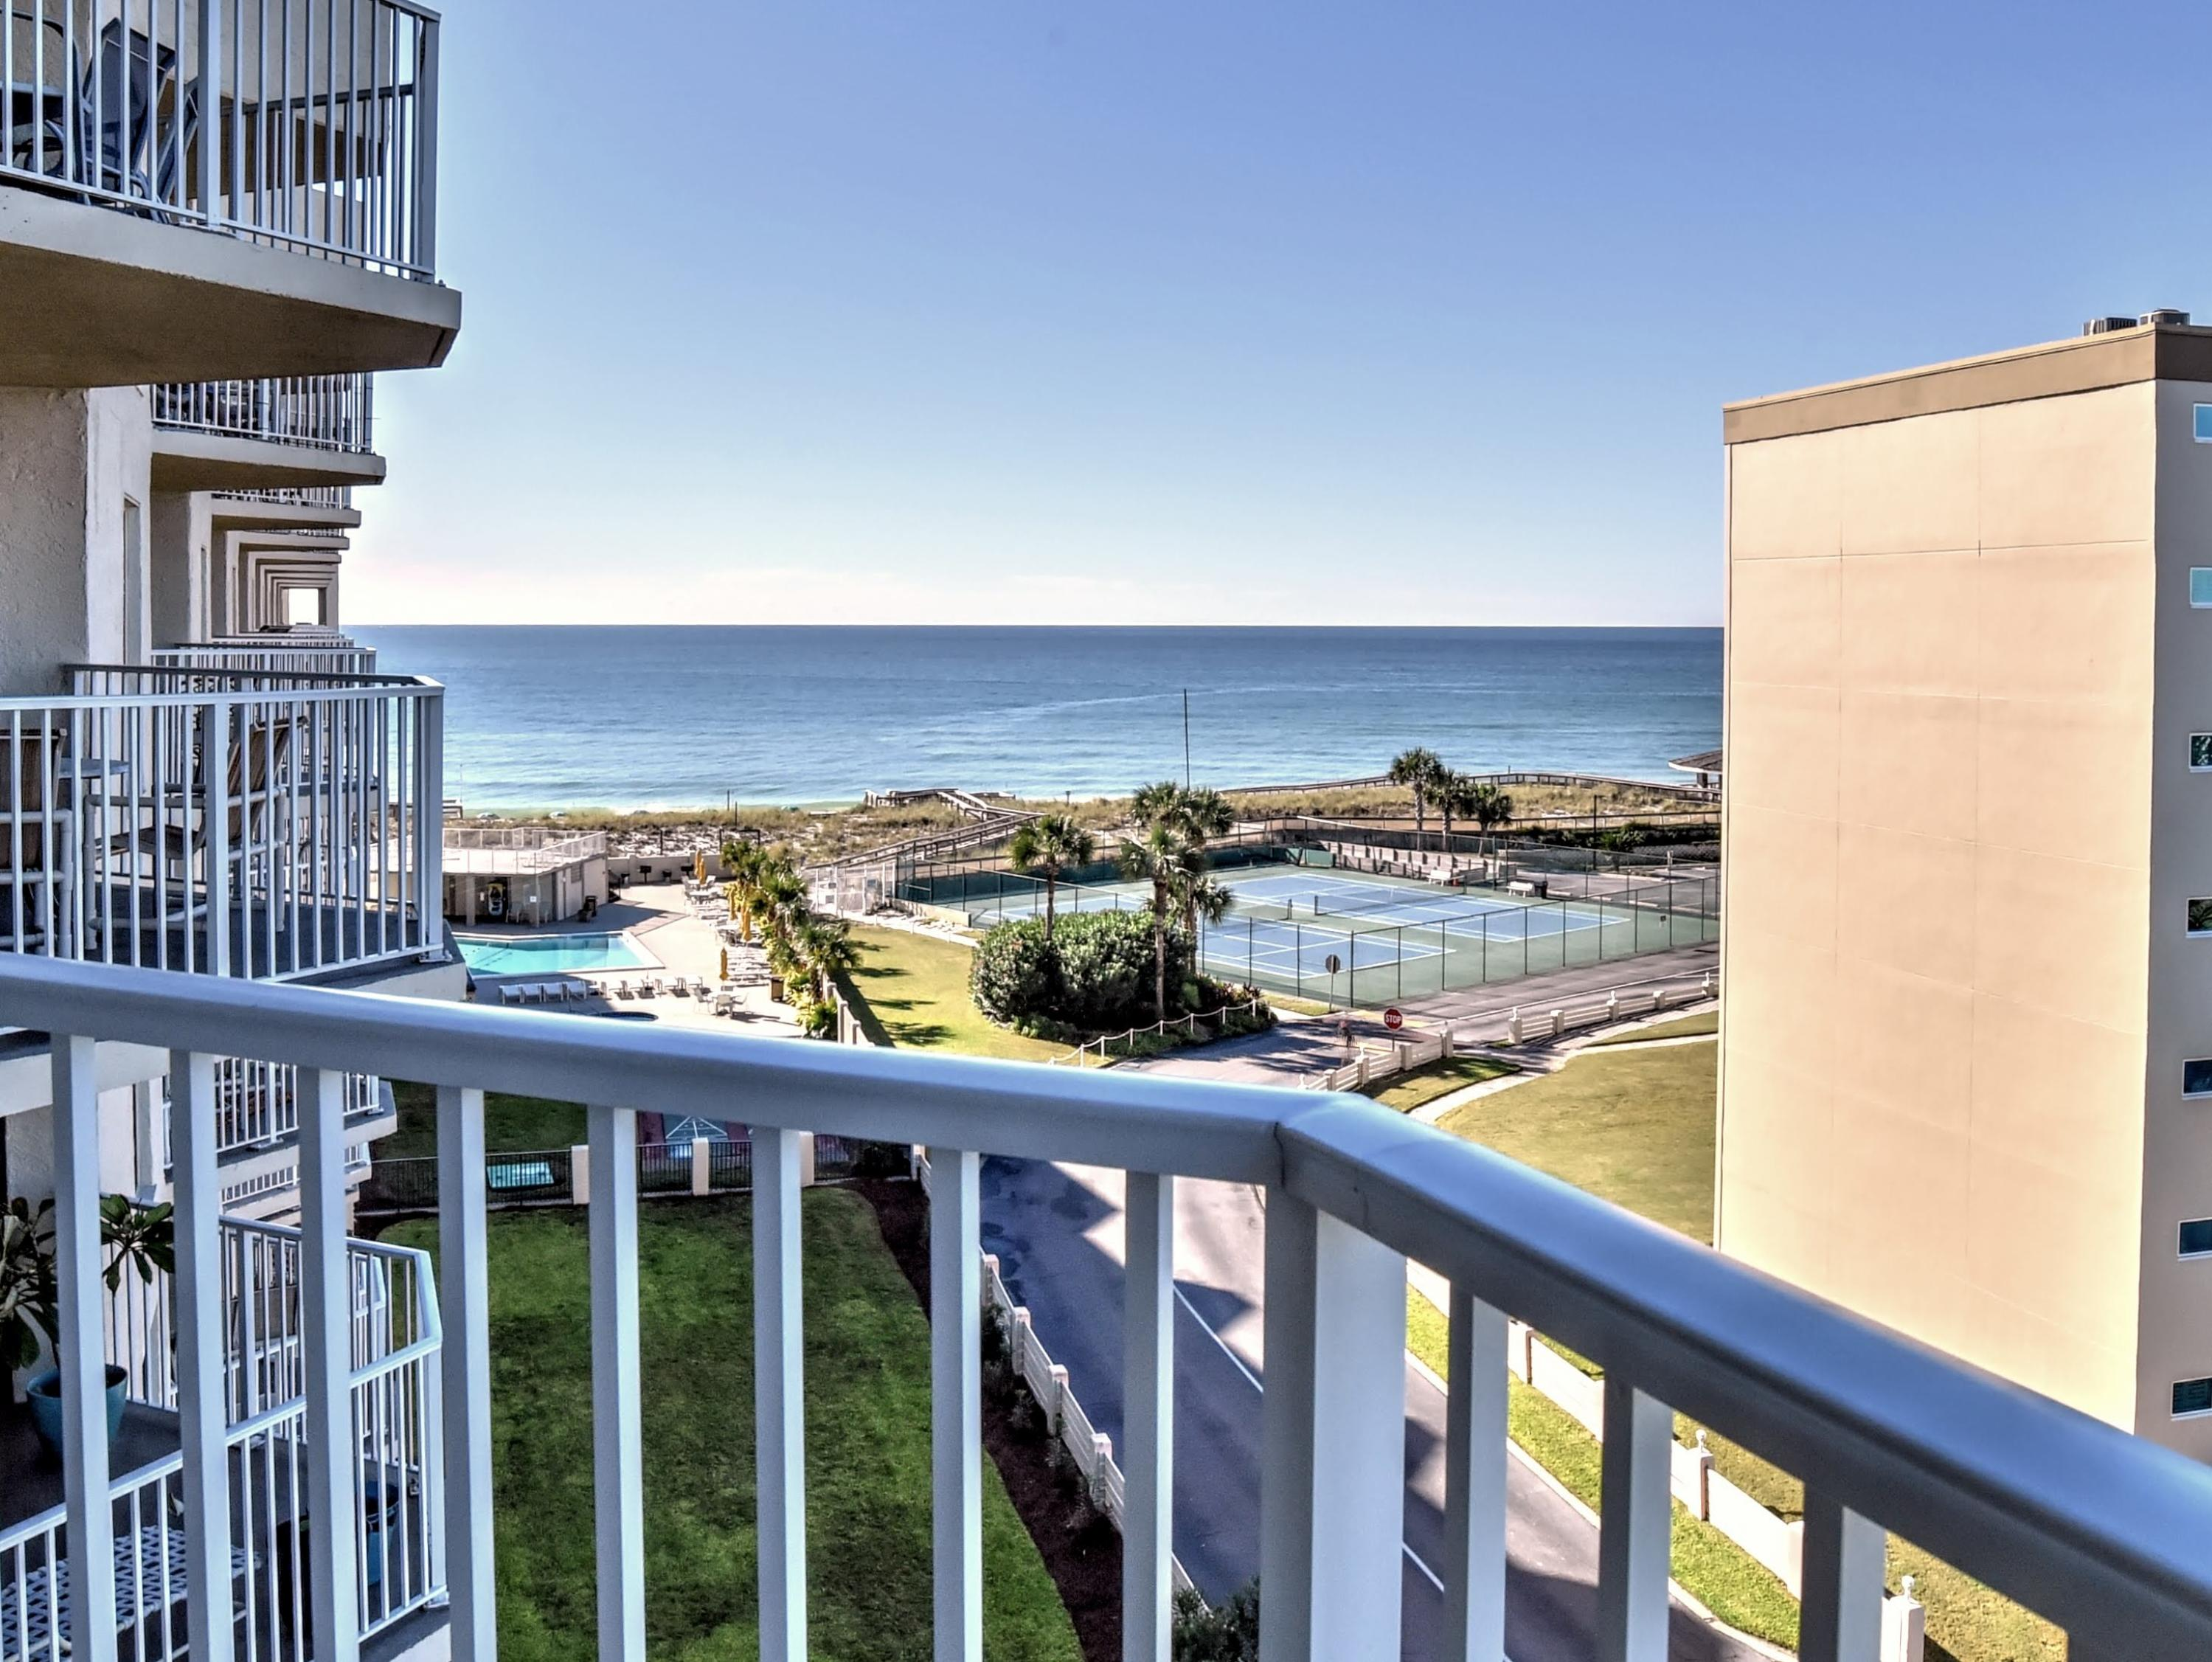 506 Gulf Shore Drive, Destin, Florida